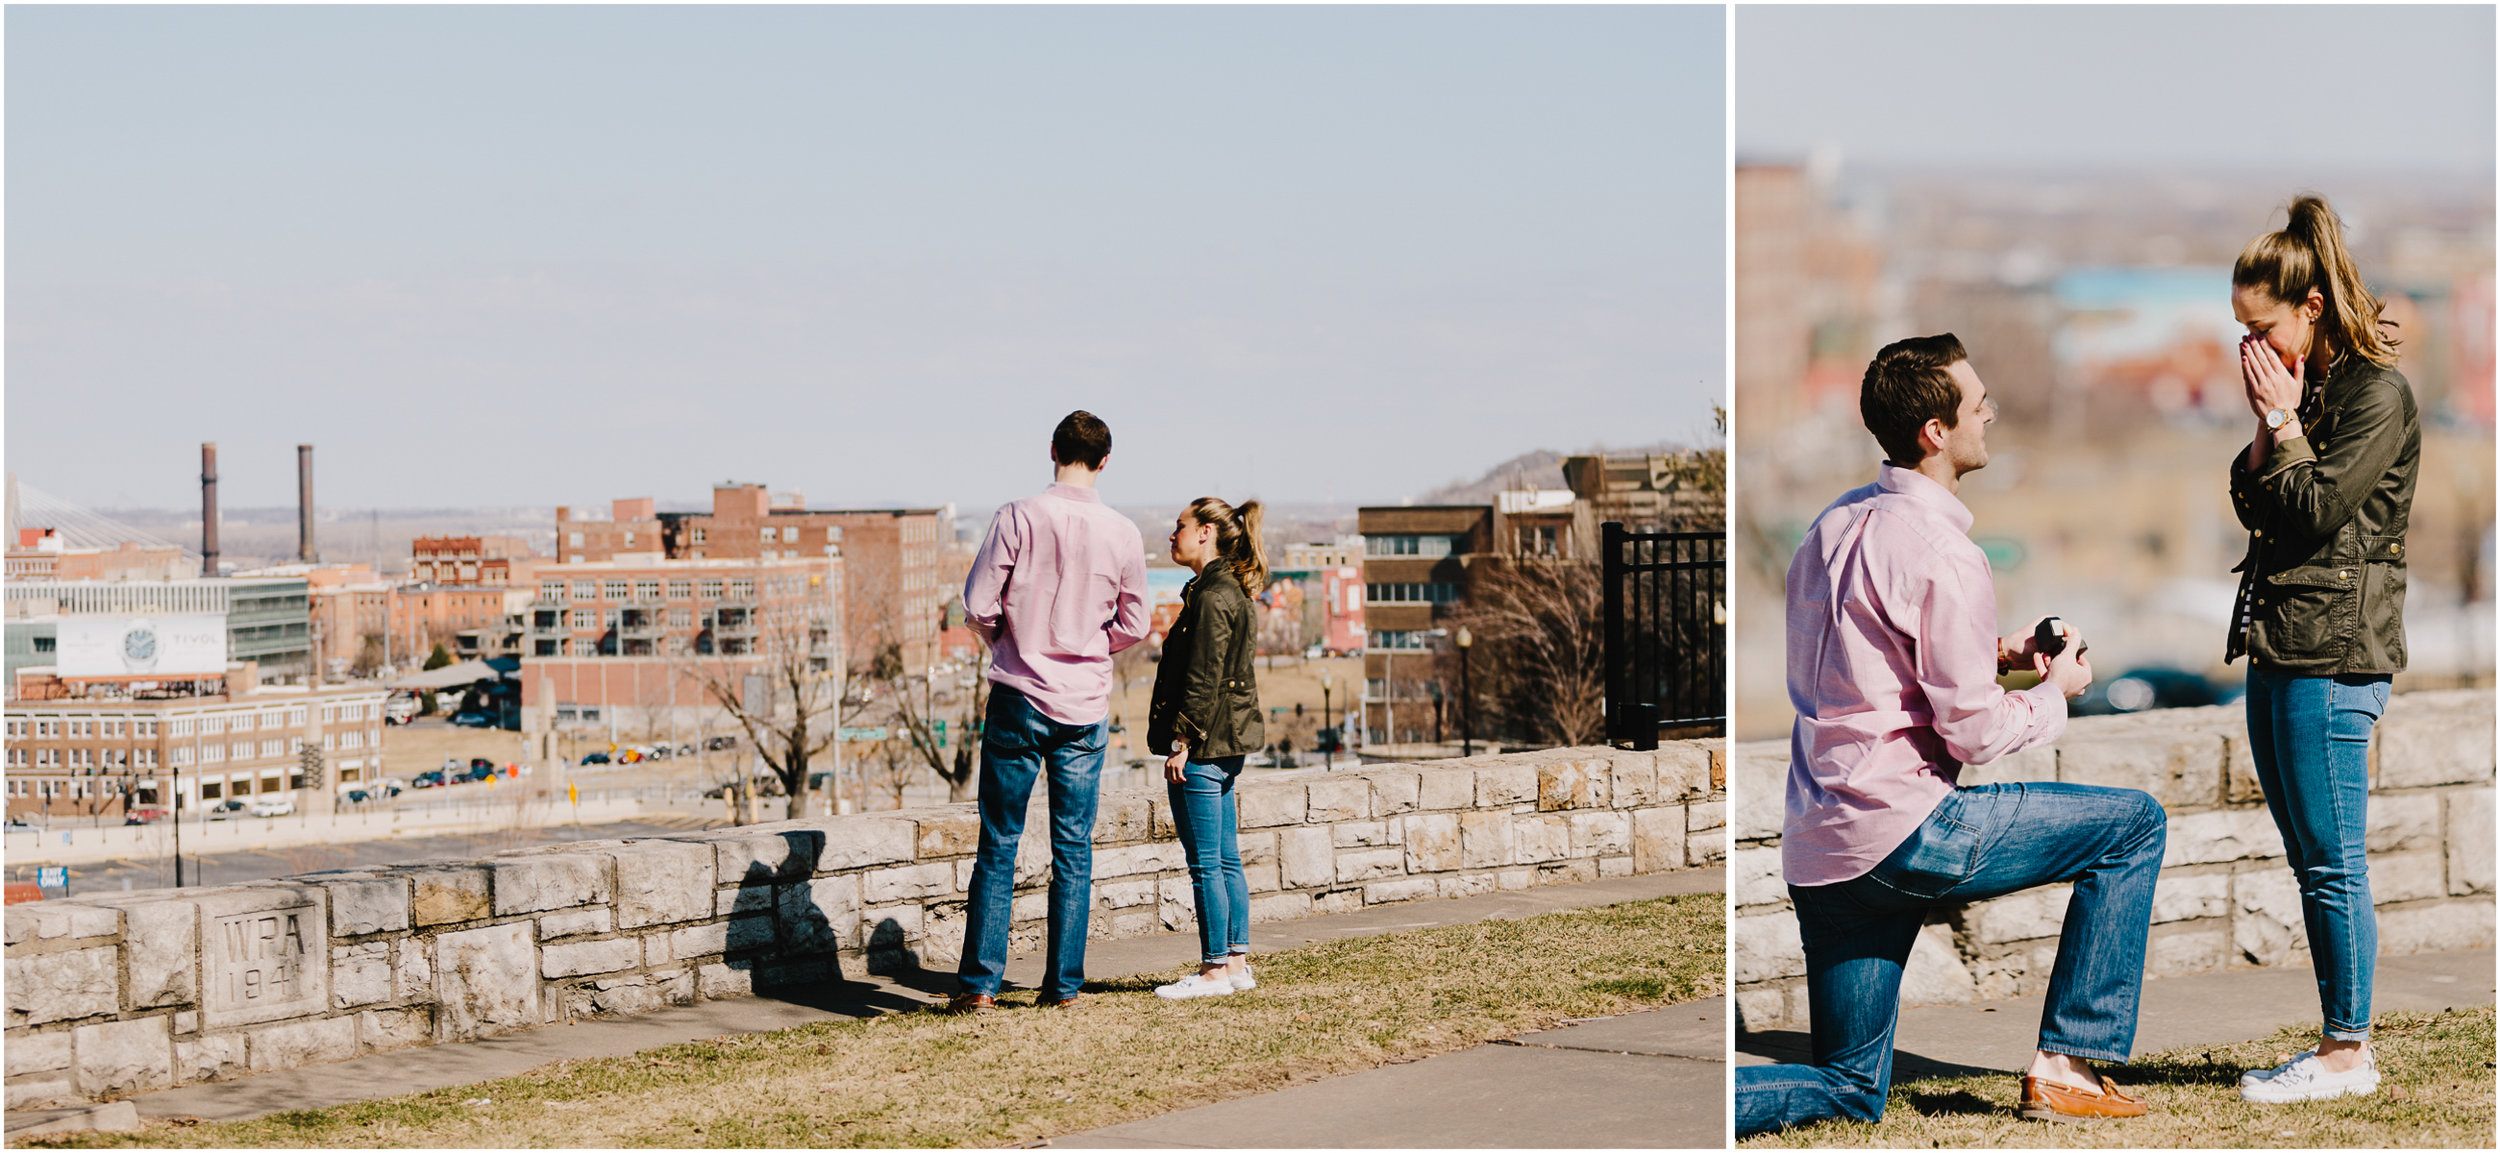 alyssa barletter photography kansas city kc proposal engagement how he asked she said yes-1.jpg